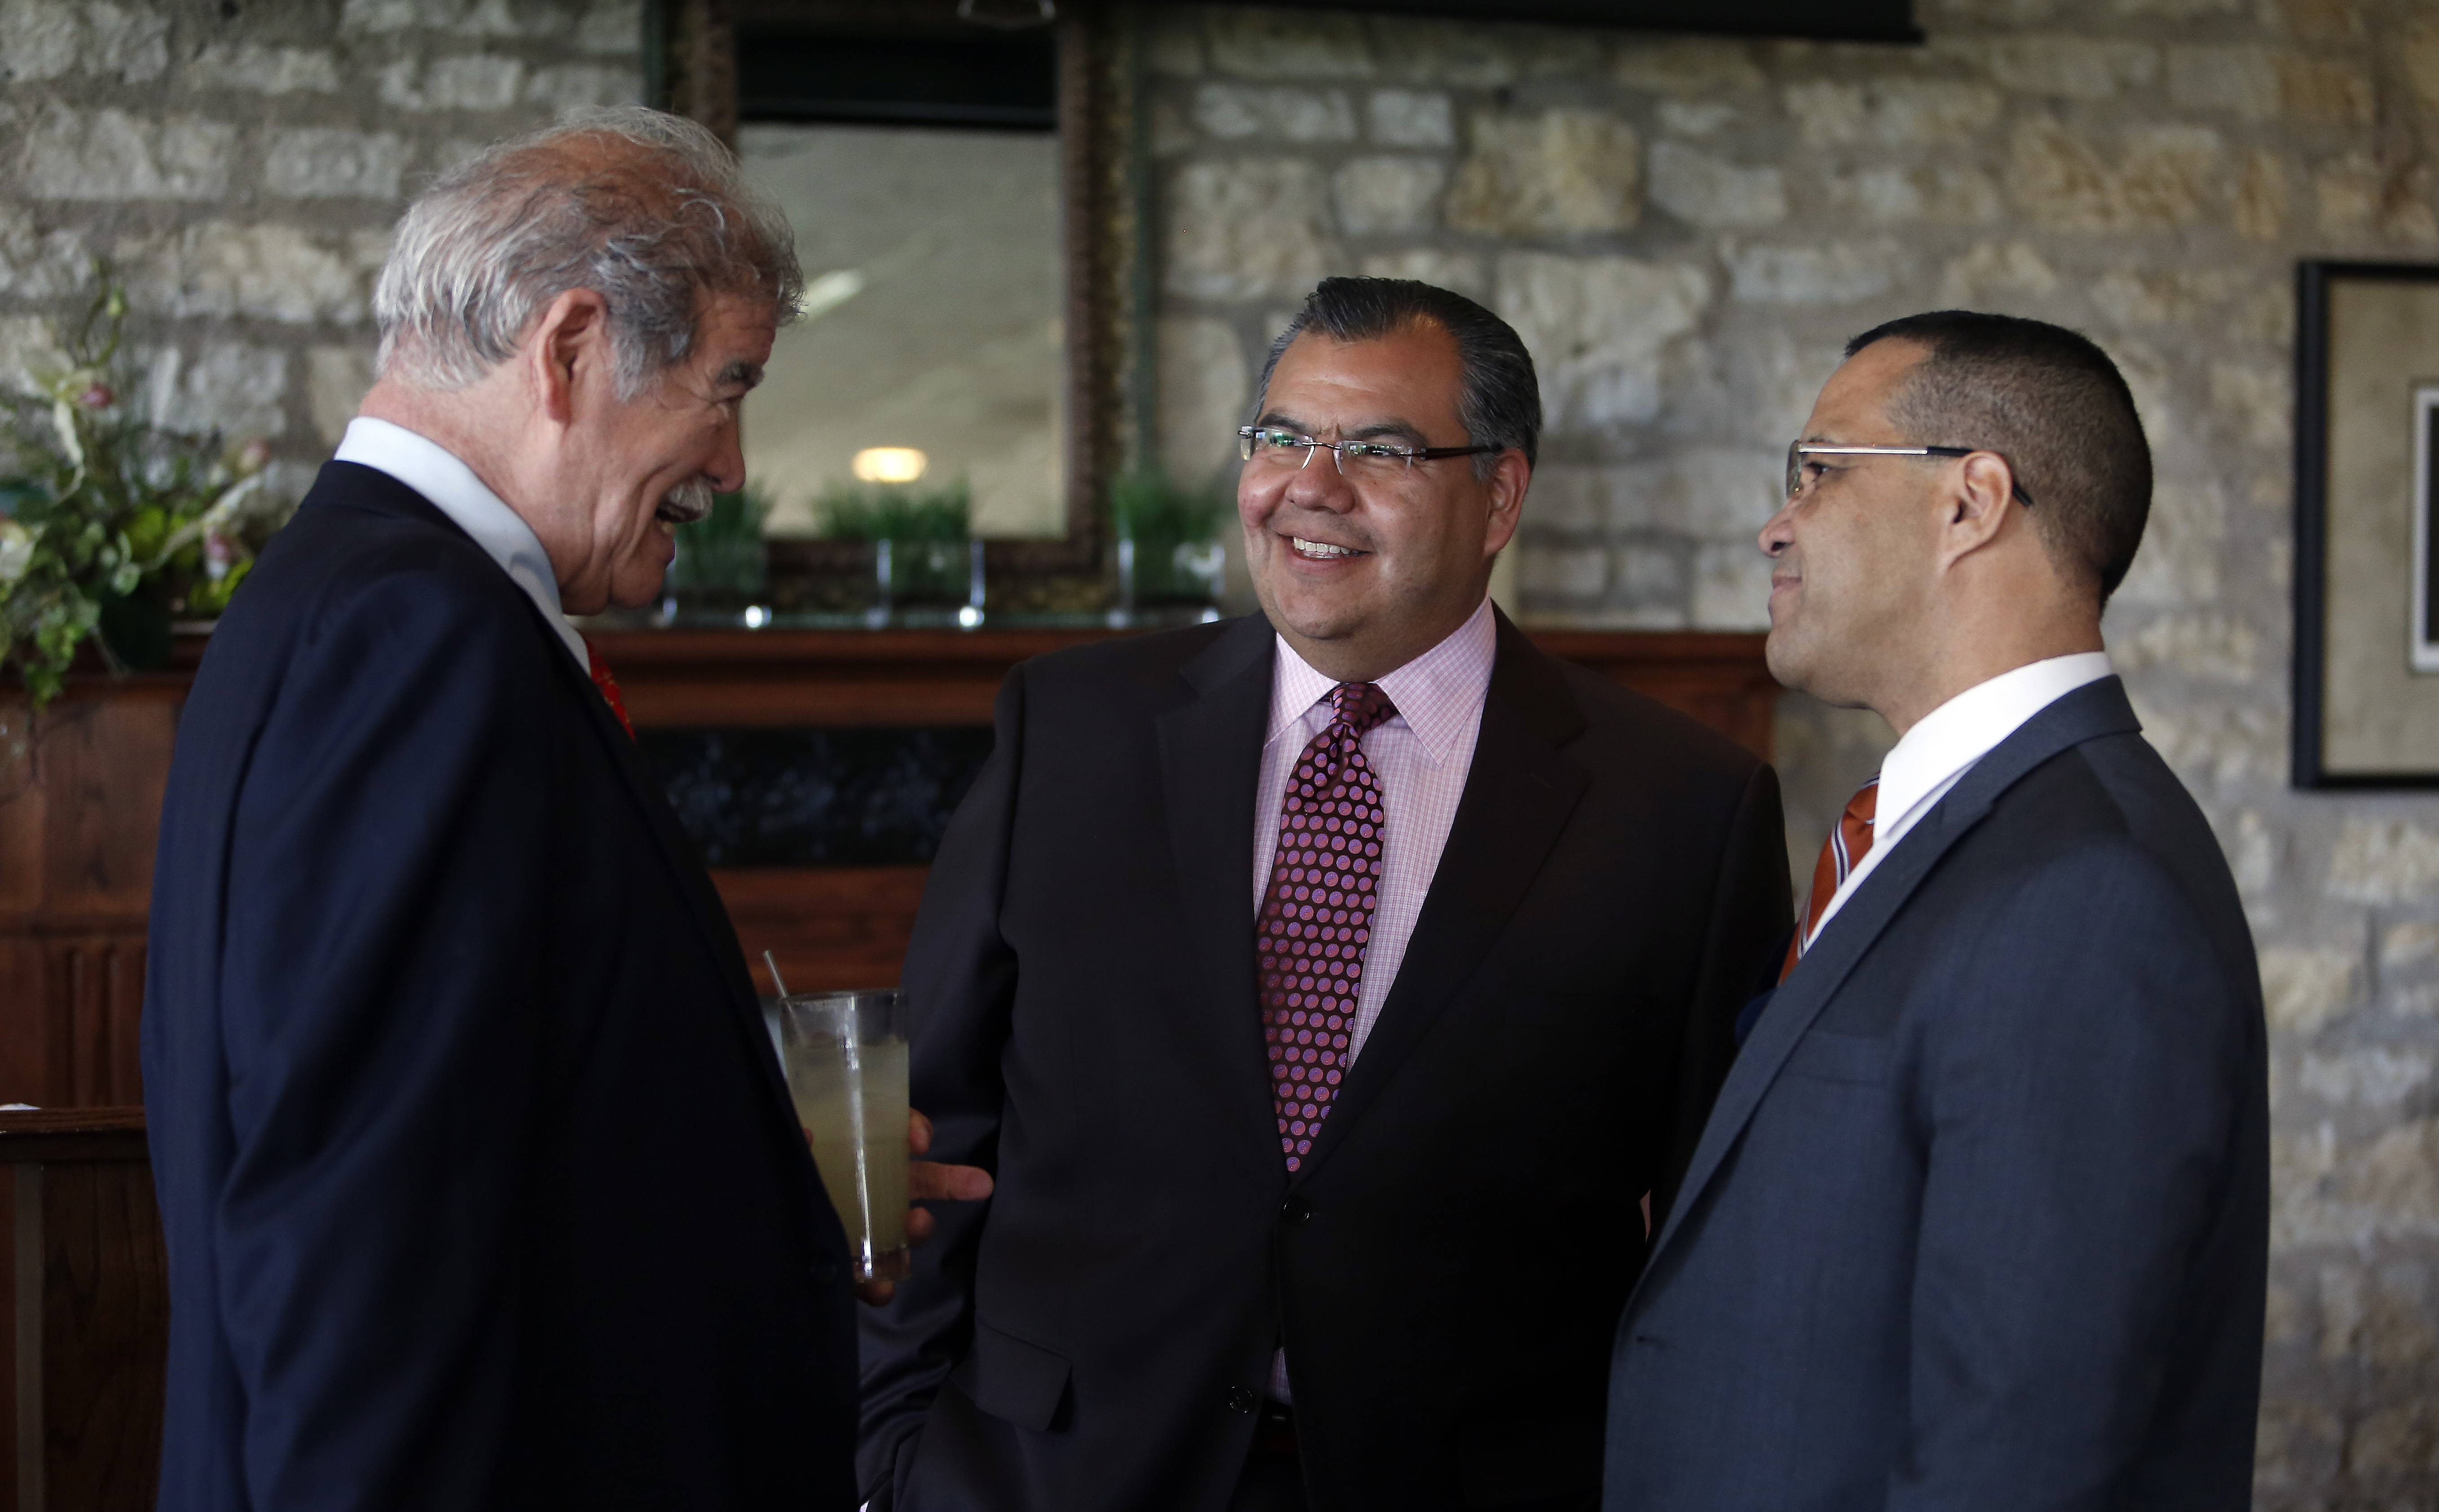 Martin Castro, center, chairman of the U.S. Commission on Civil Rights, was the guest speaker Tuesday at the annual Community Day luncheon benefiting Centro de Informacion at the Elgin Country Club. Castro talks to retired federal judge Manuel Barbosa, left, and Elgin Area School District U-46 Superintendent Jose Torres.